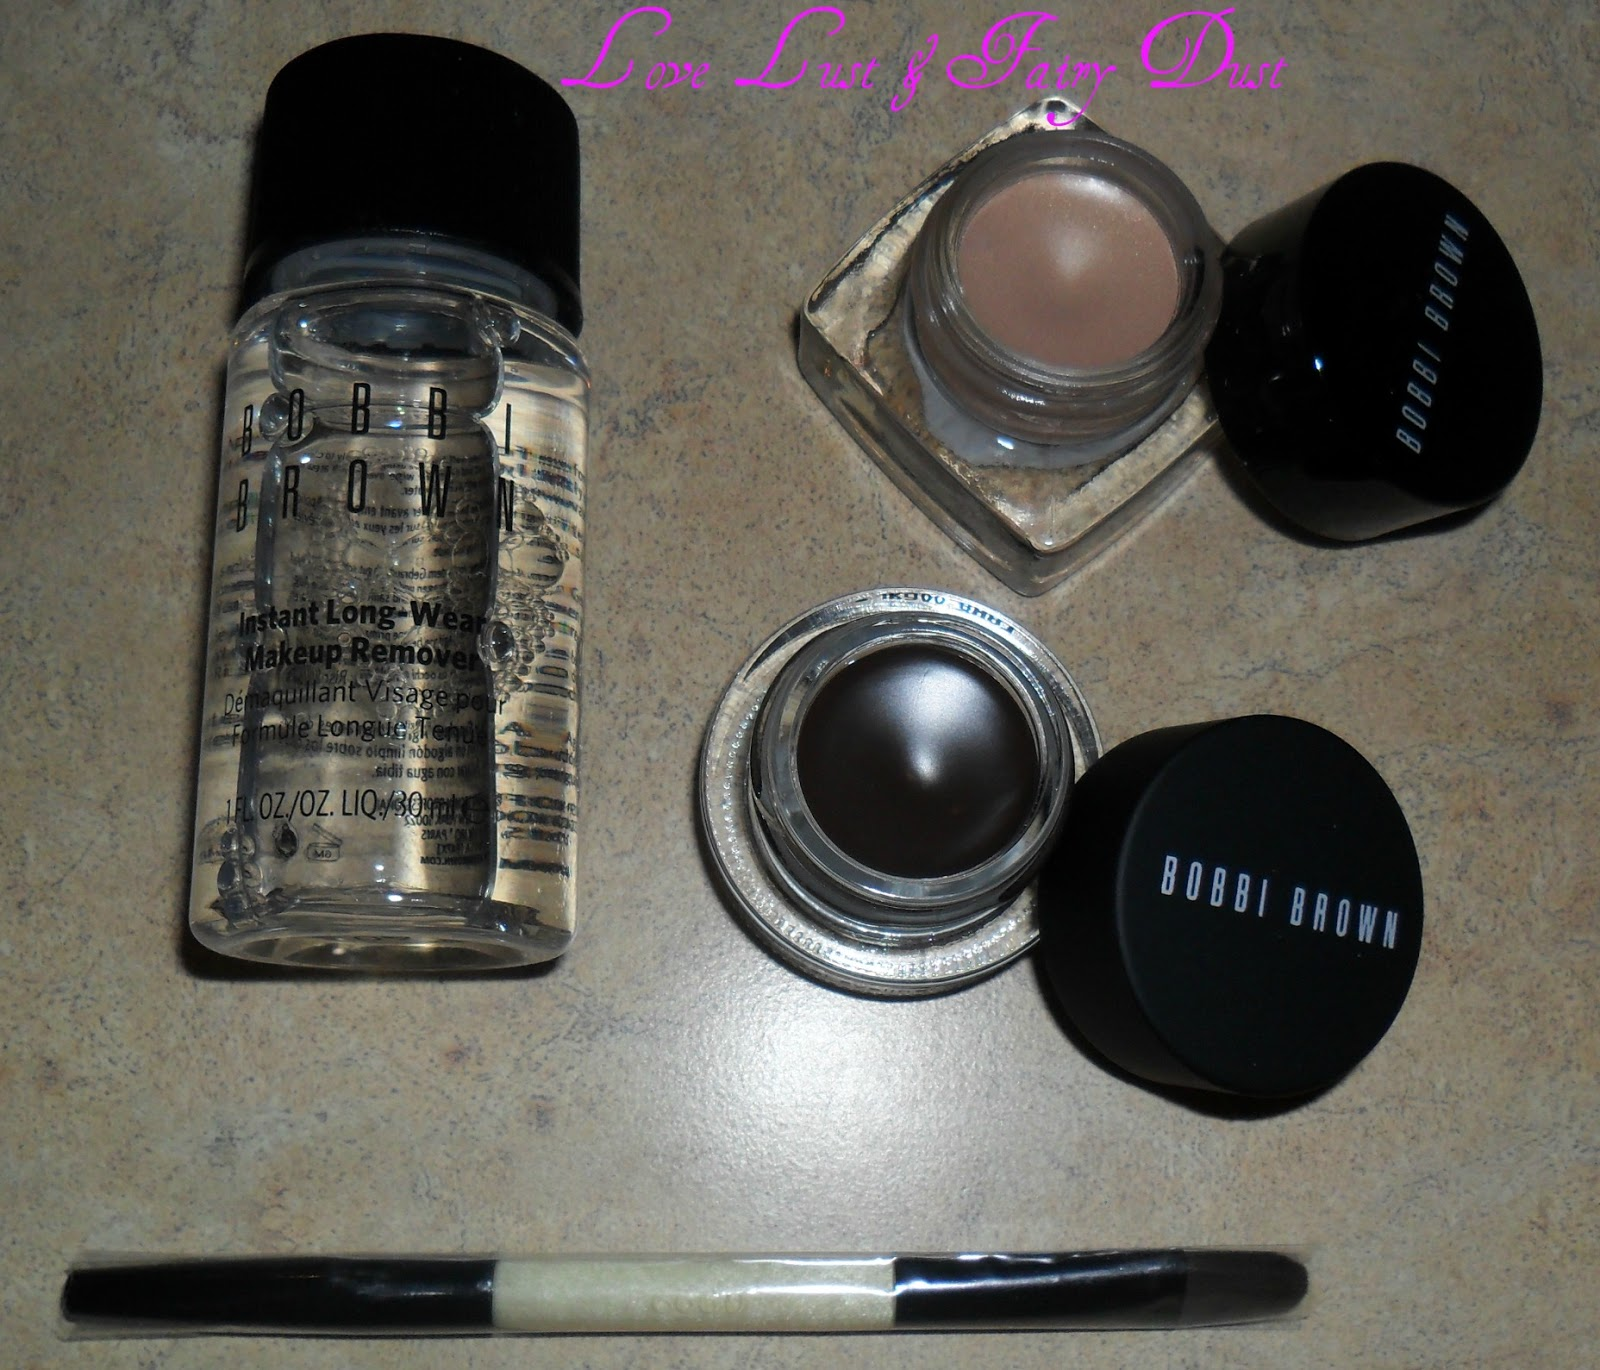 review of bobbi brown long wear eye kit